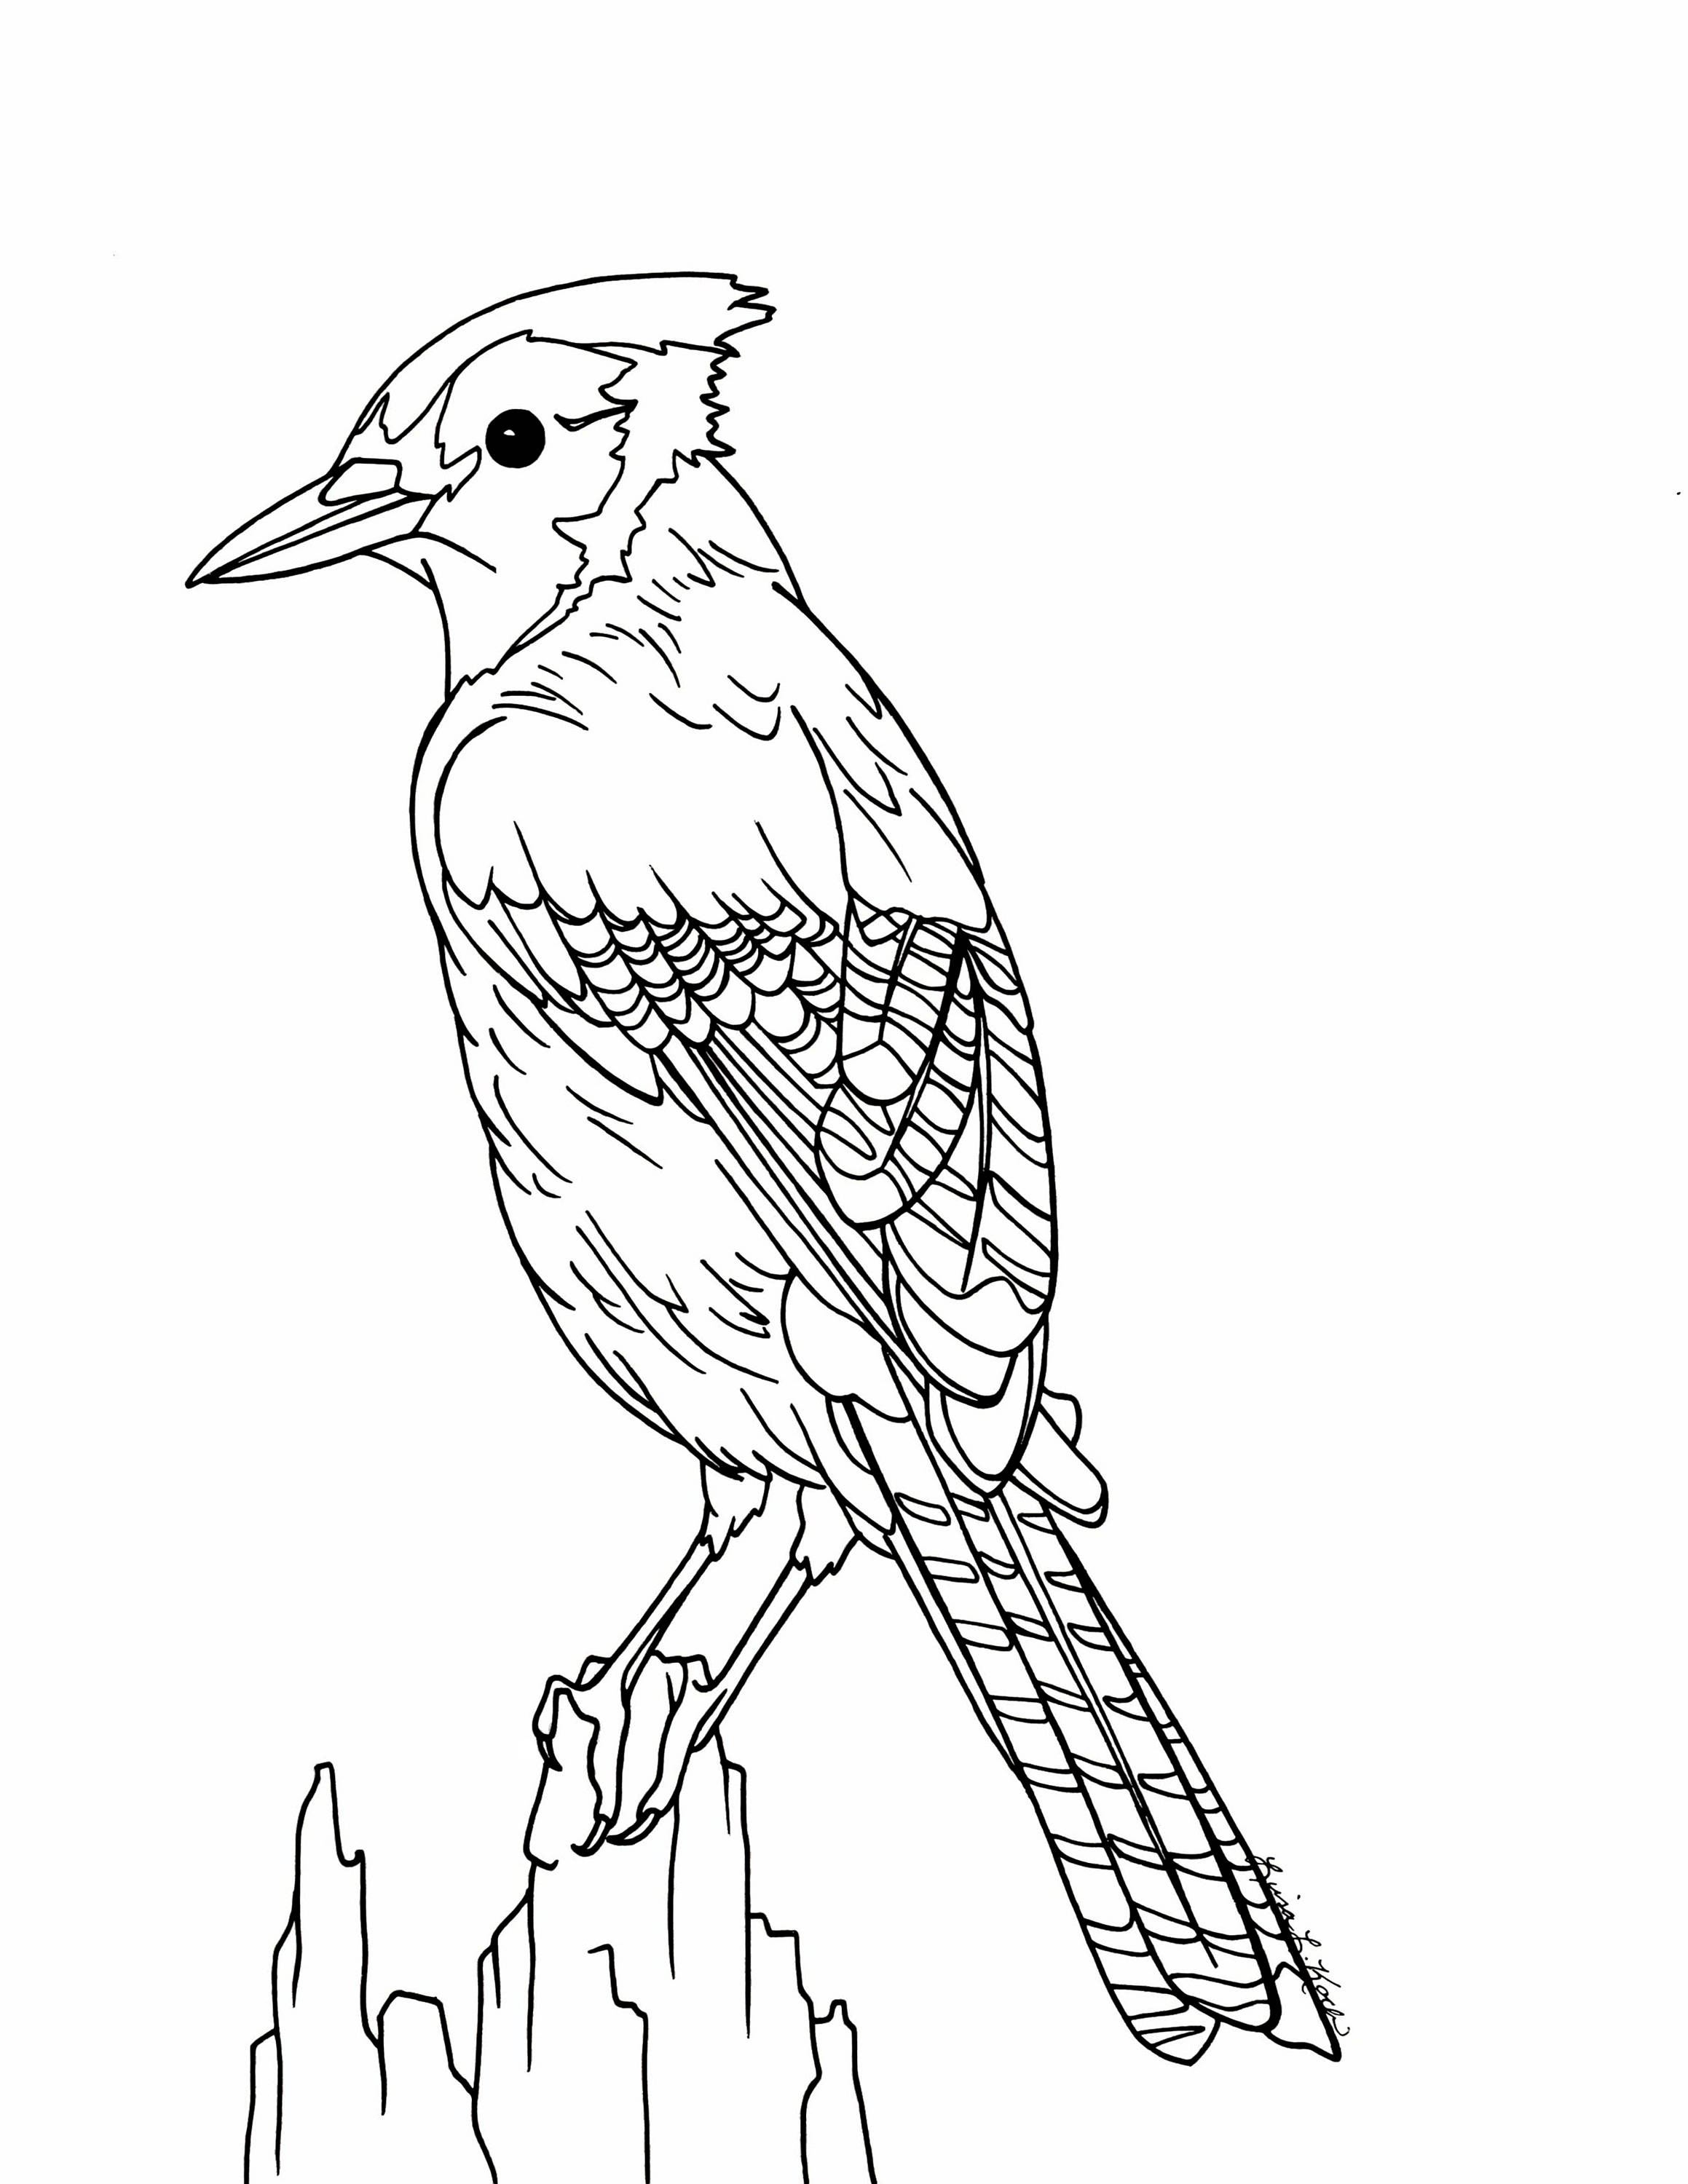 toronto blue jays coloring pages blue jay coloring download blue jay coloring for free 2019 pages coloring toronto blue jays